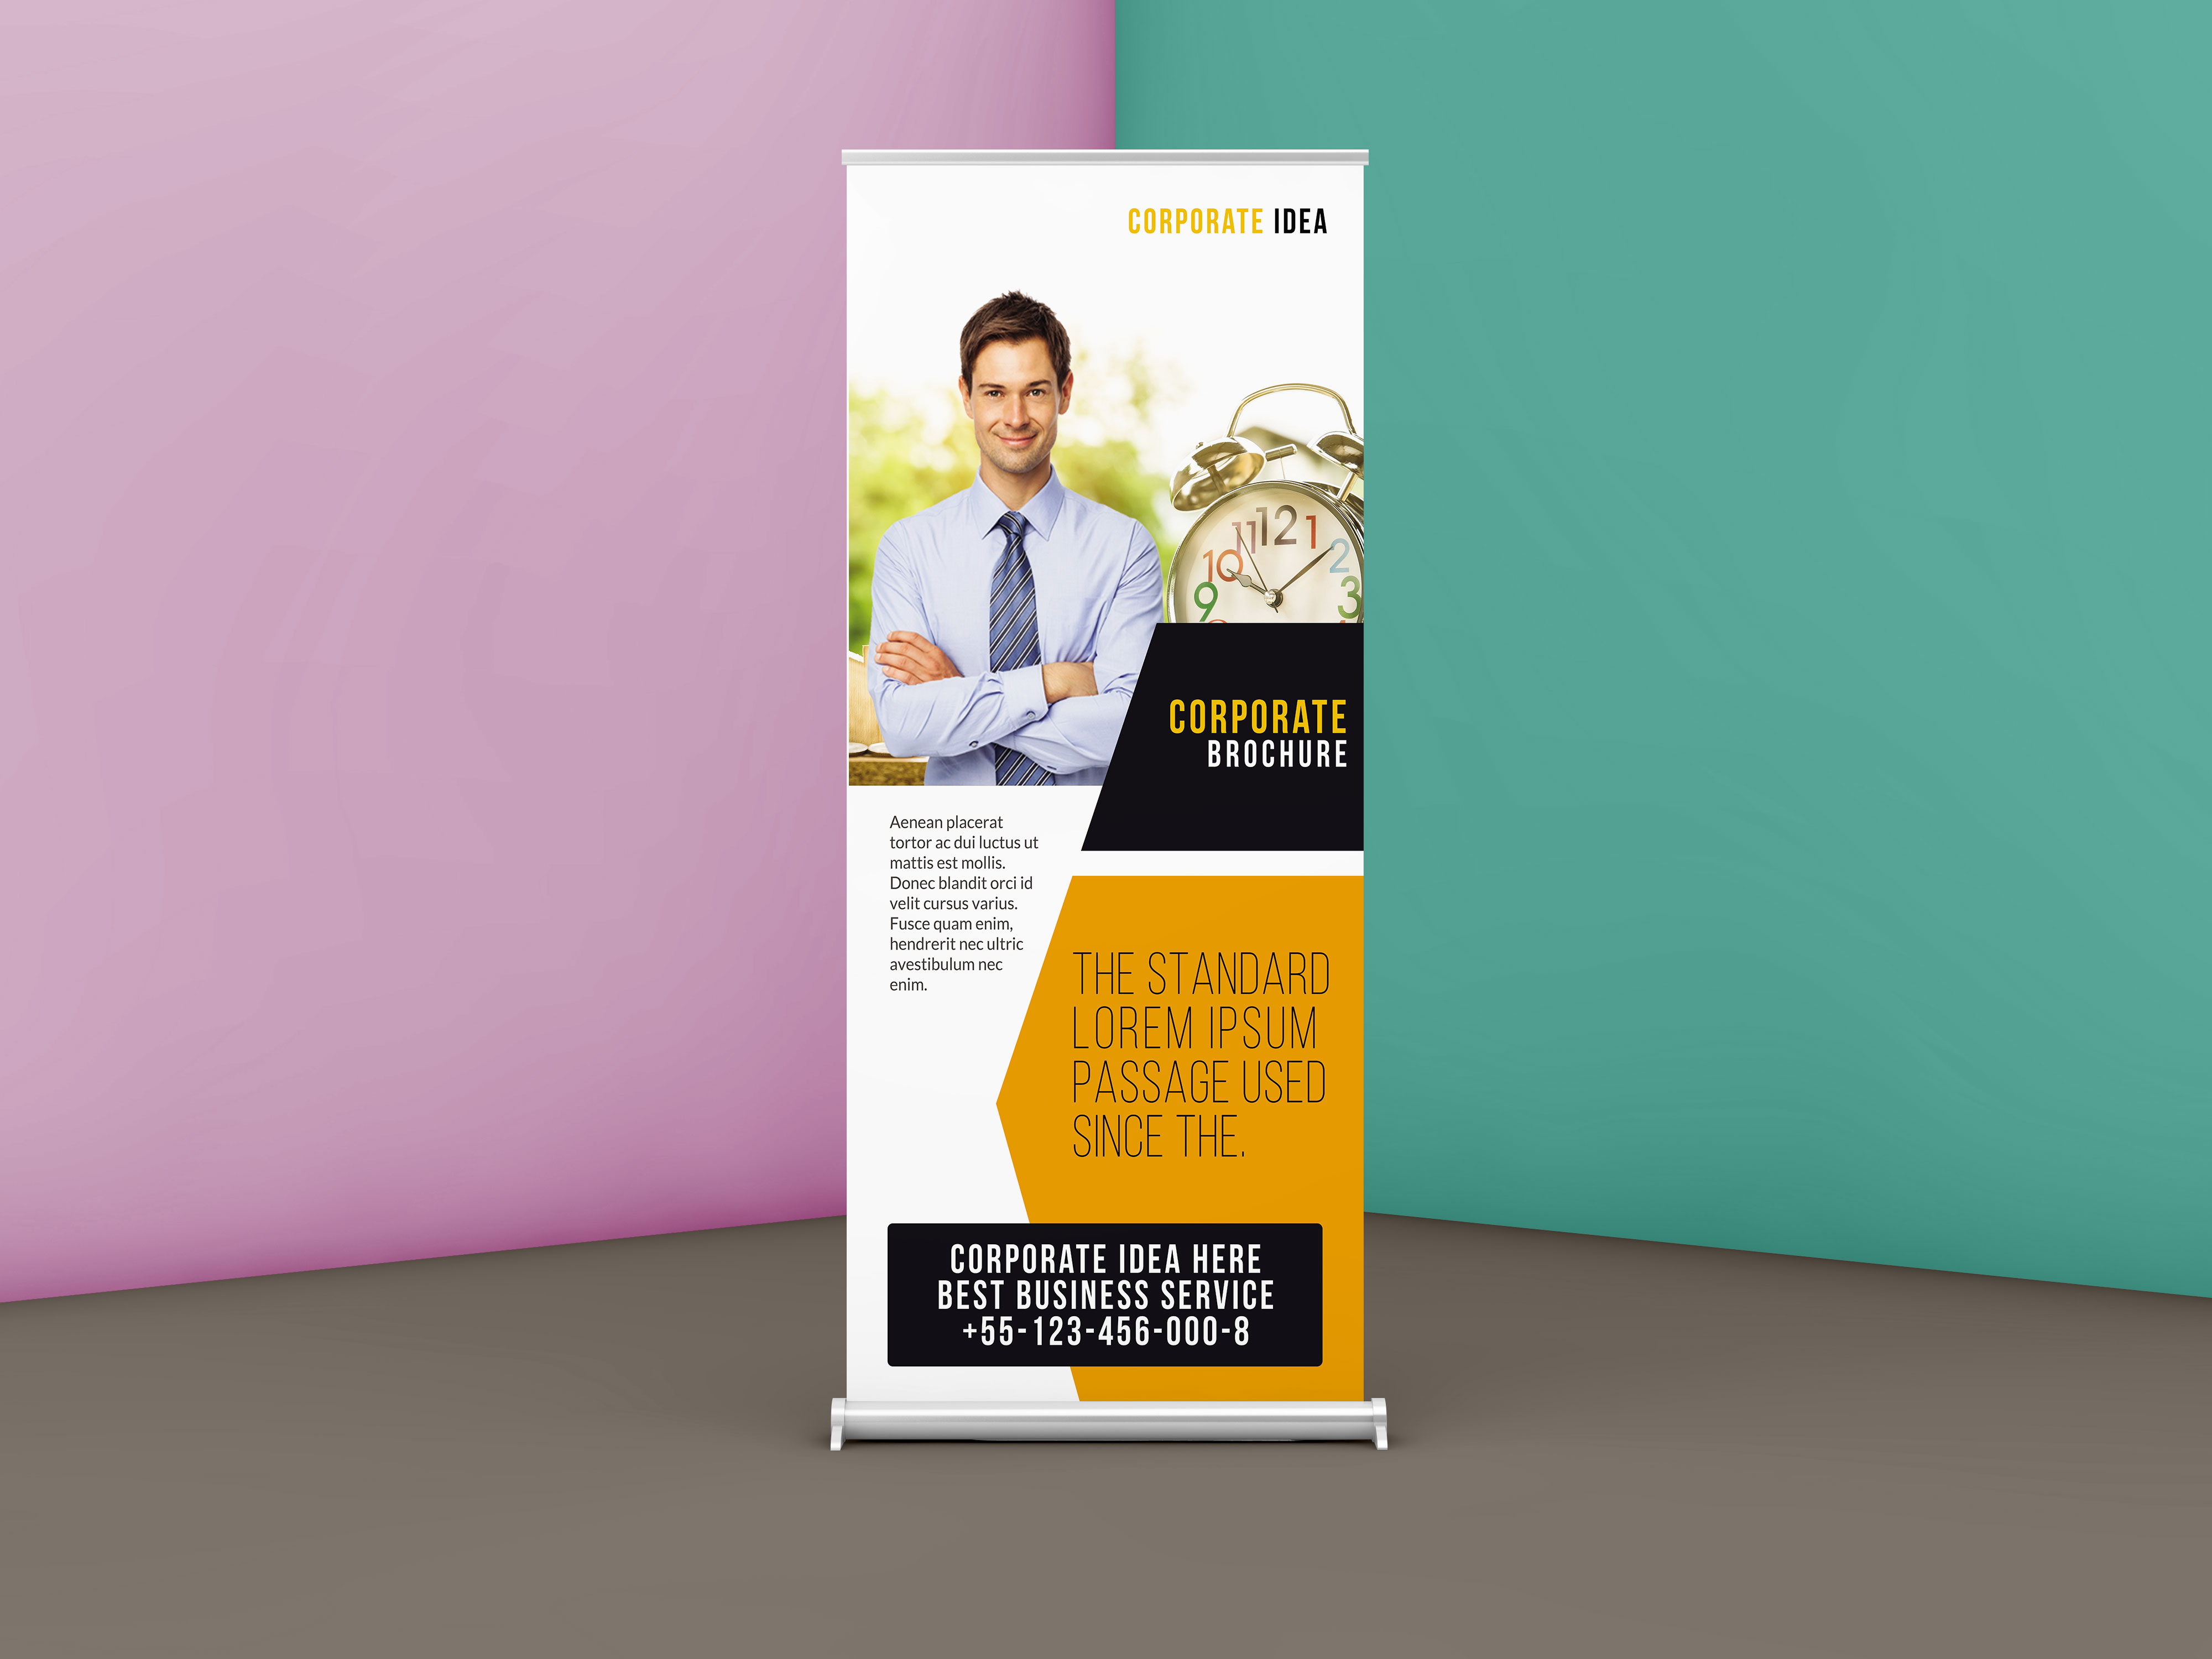 Free corporate business roll up banner psd template free psd mockup free corporate business roll up banner psd template wajeb Gallery